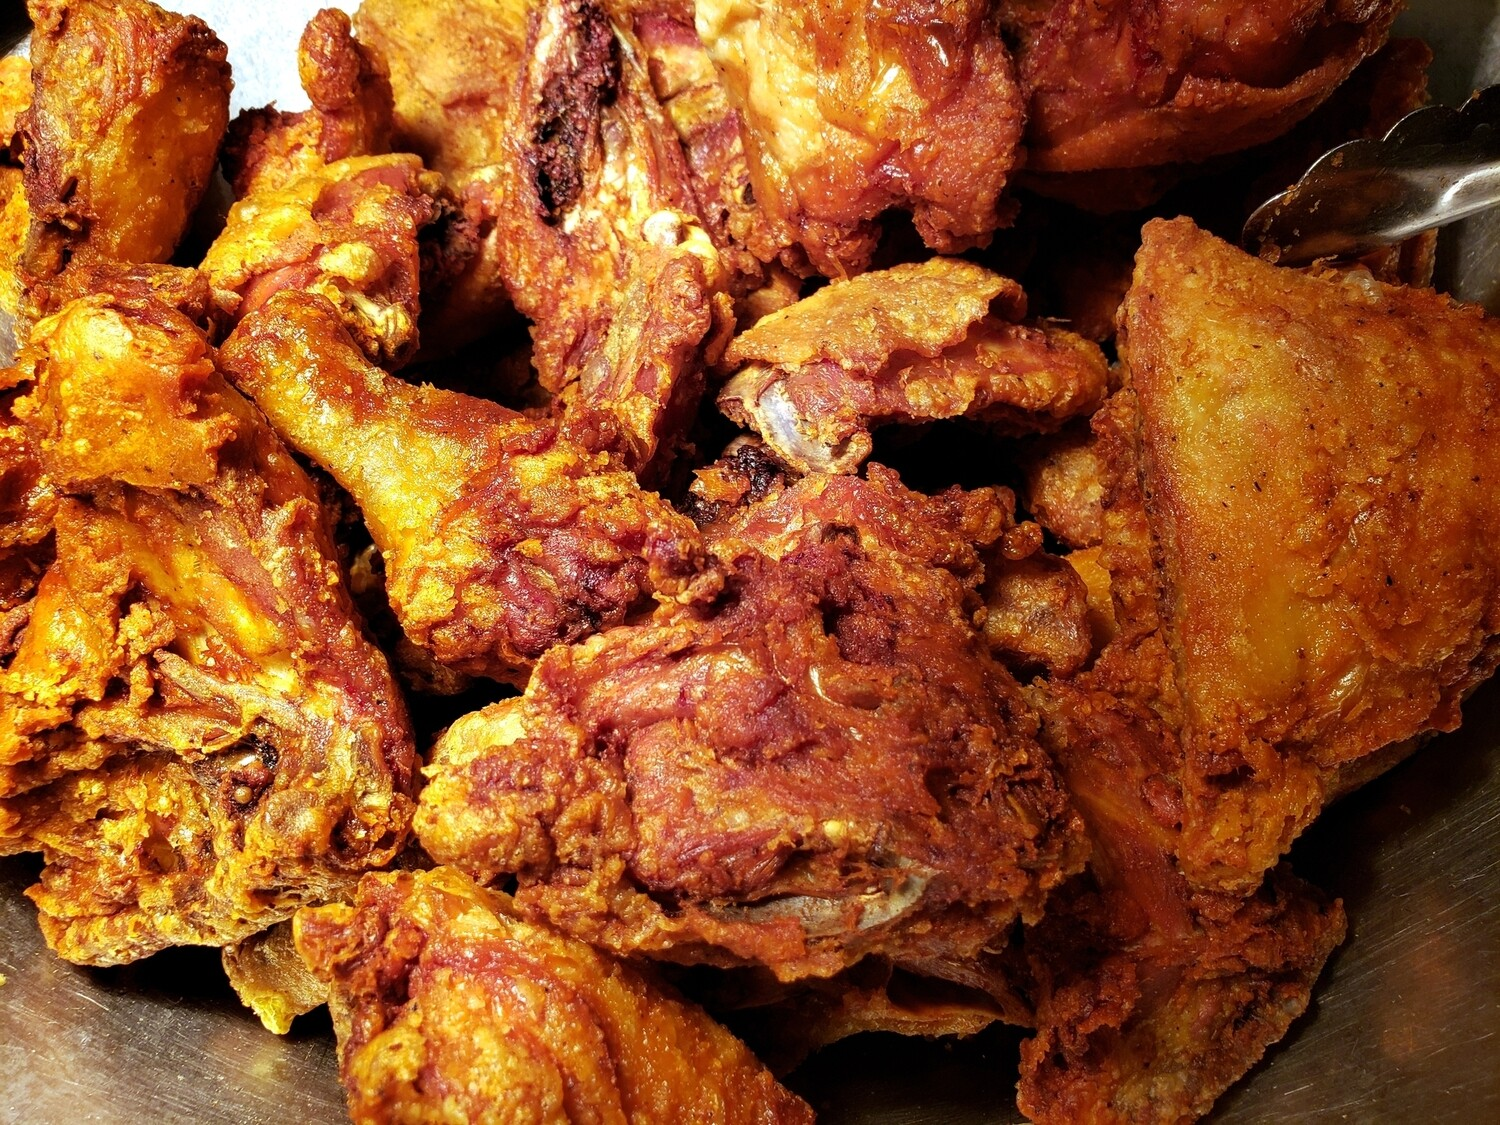 4th of July Fried Chicken For 4